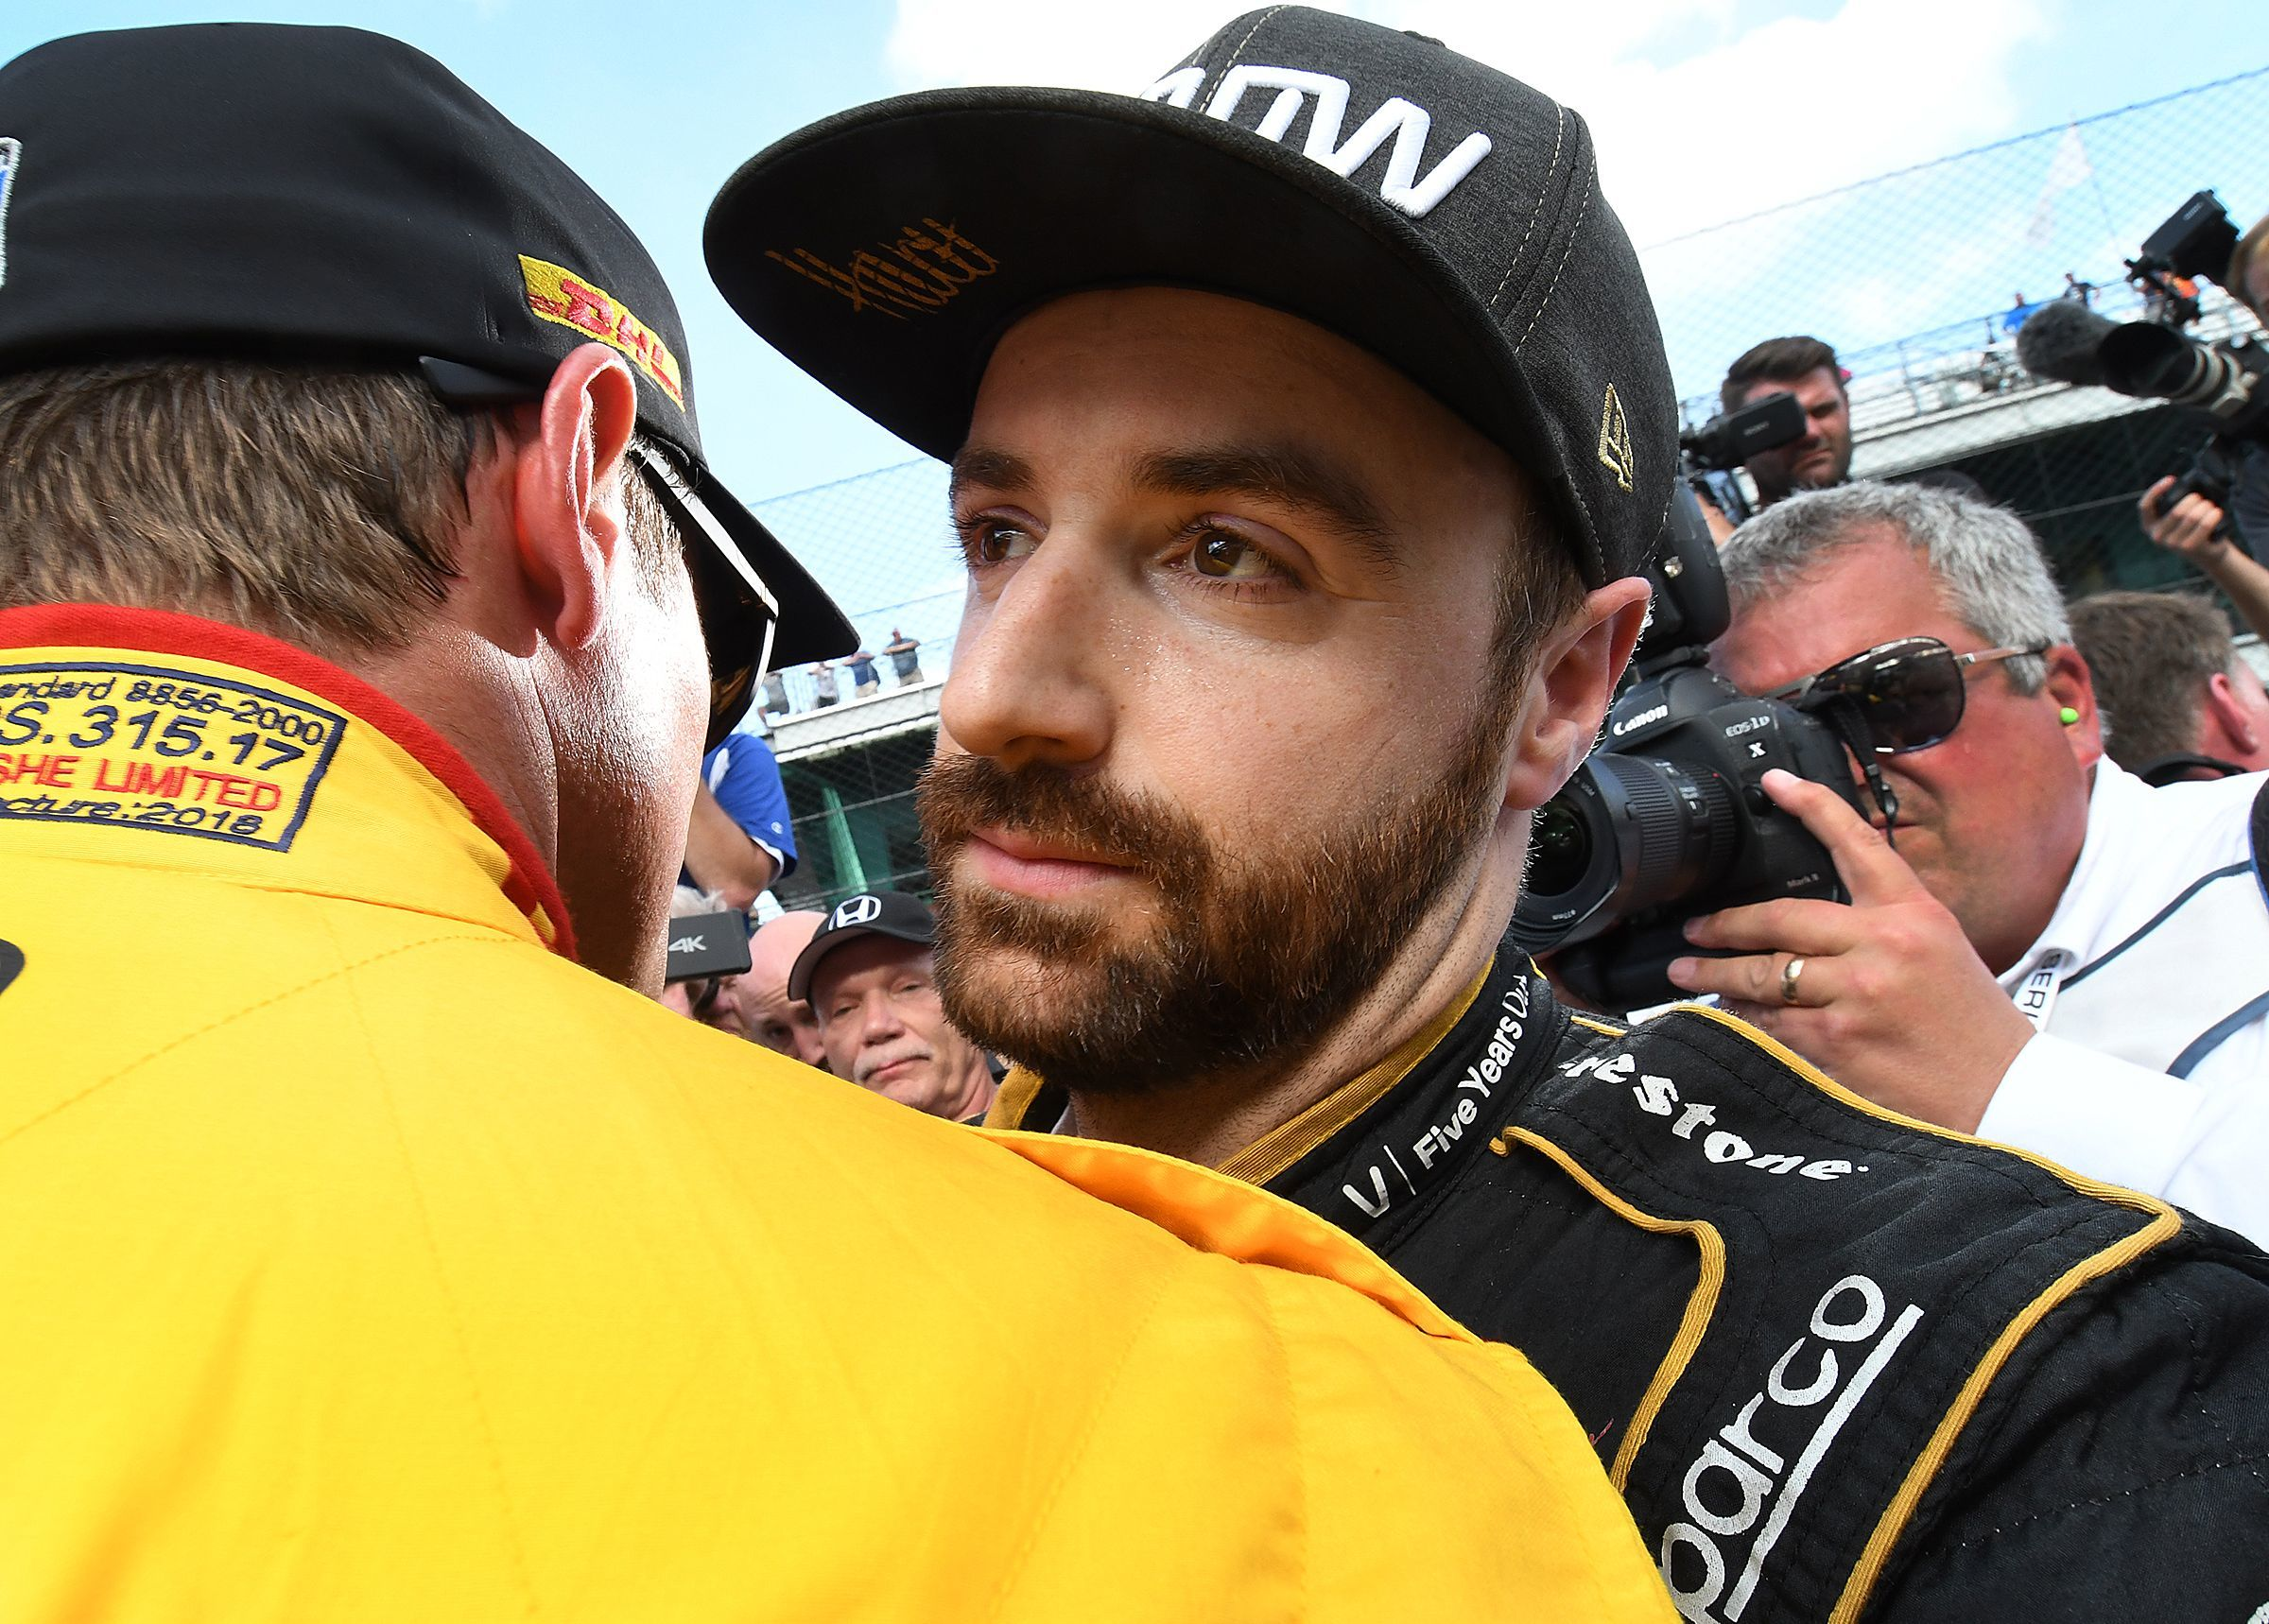 Schmidt Peterson Motorsports IndyCar driver James Hinchcliffe (5) got a hug from driver Ryan Hunter-Reay after he failed to make the field of 33 cars on qualification day for the 2018 Indianapolis 500.